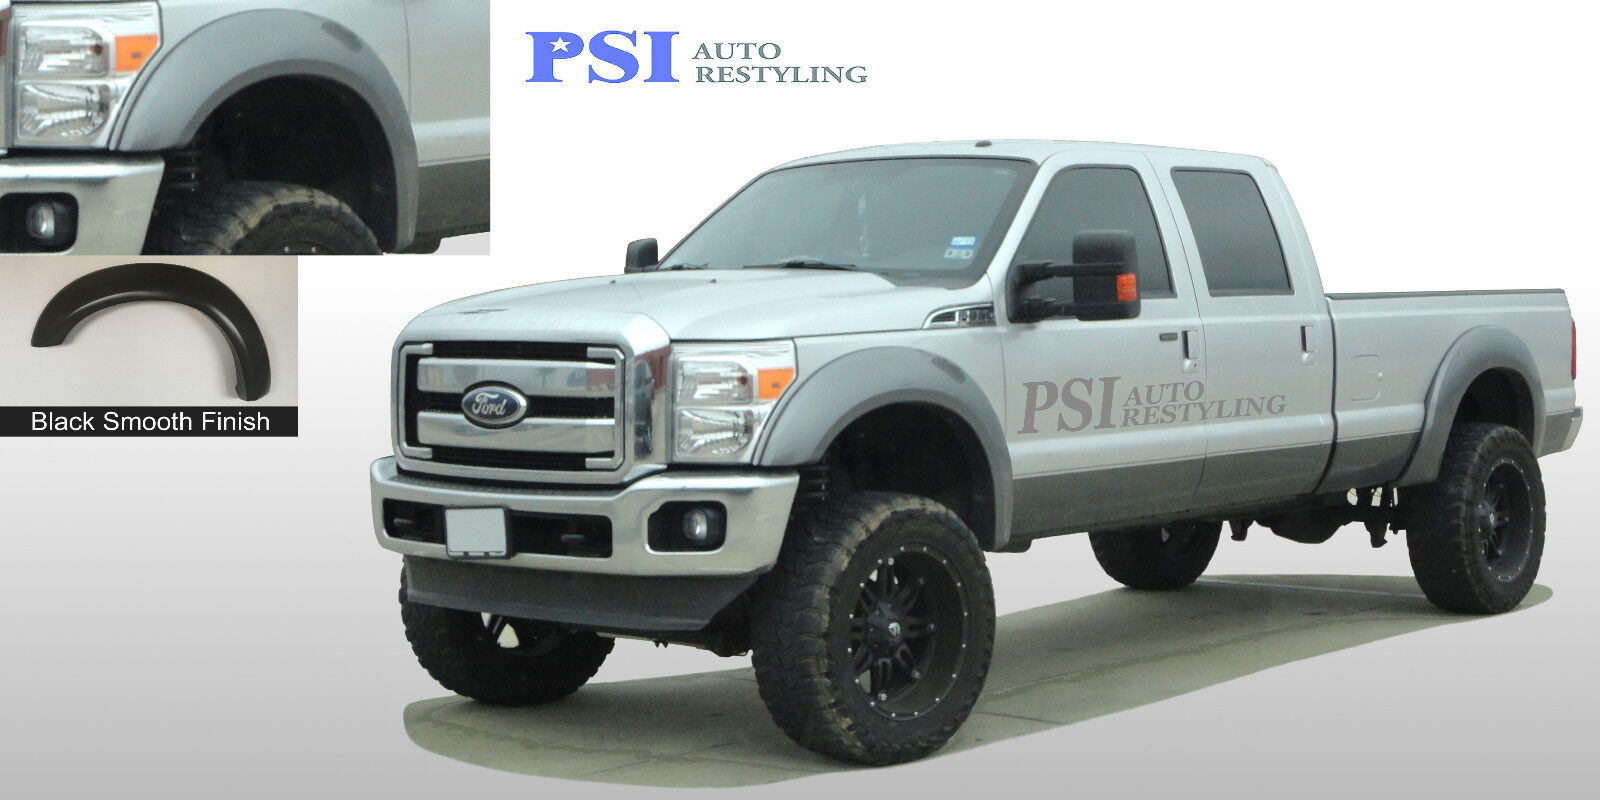 2016 F350 Super Duty >> Black Paintable Extension Fender Flares 11-16 Ford F-250, F-350 Super Duty 4pcs | eBay